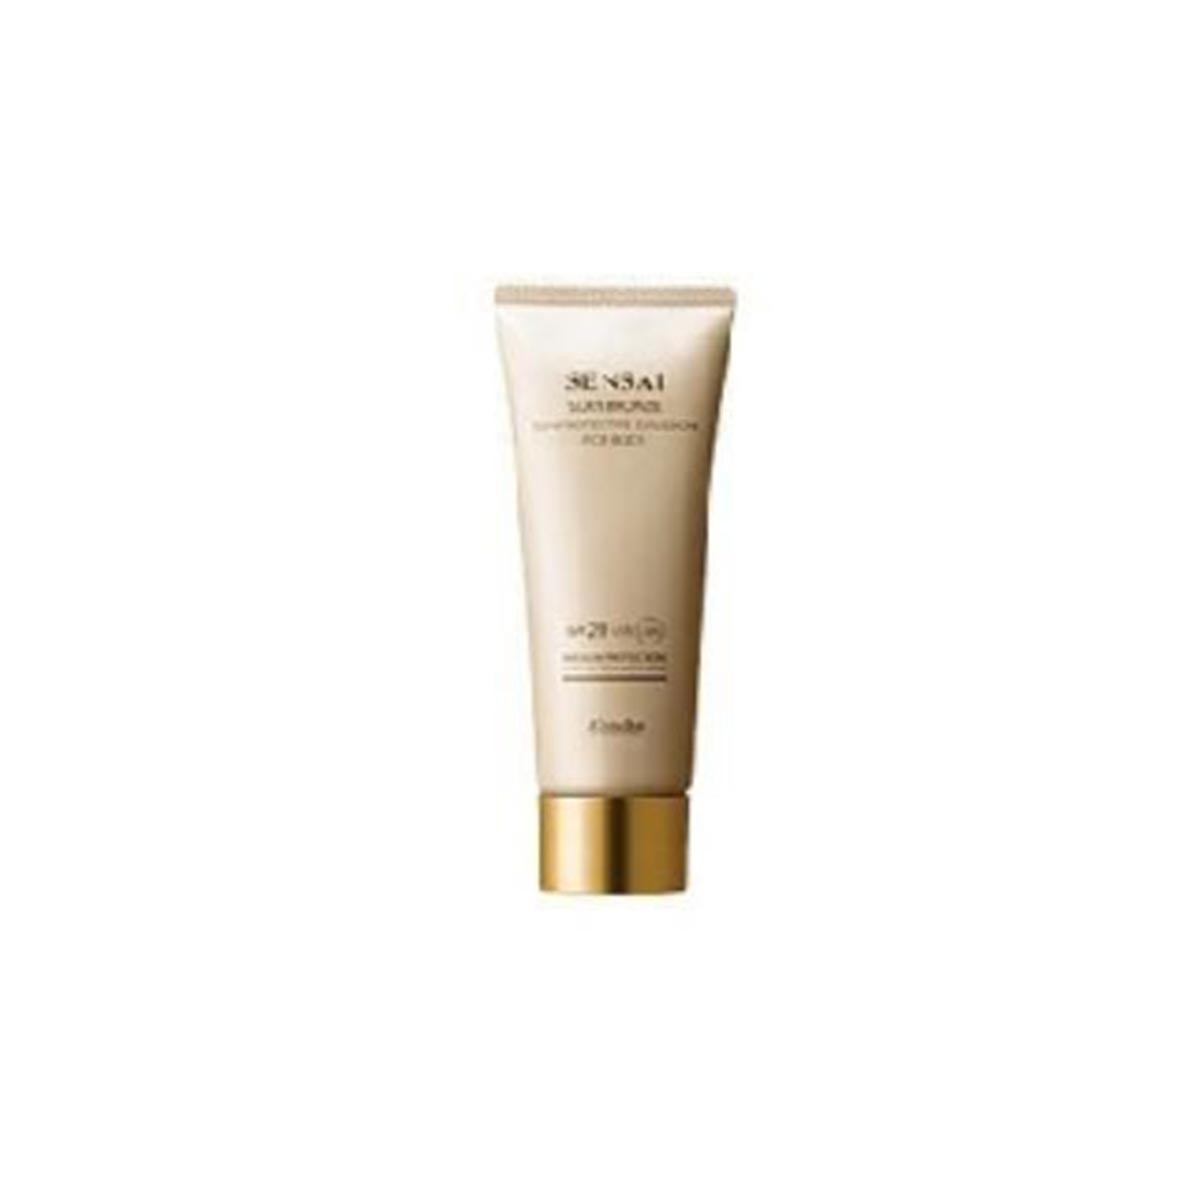 Kanebo Sensai Silky Bronze Sun Emulsion Spf20 150 ml